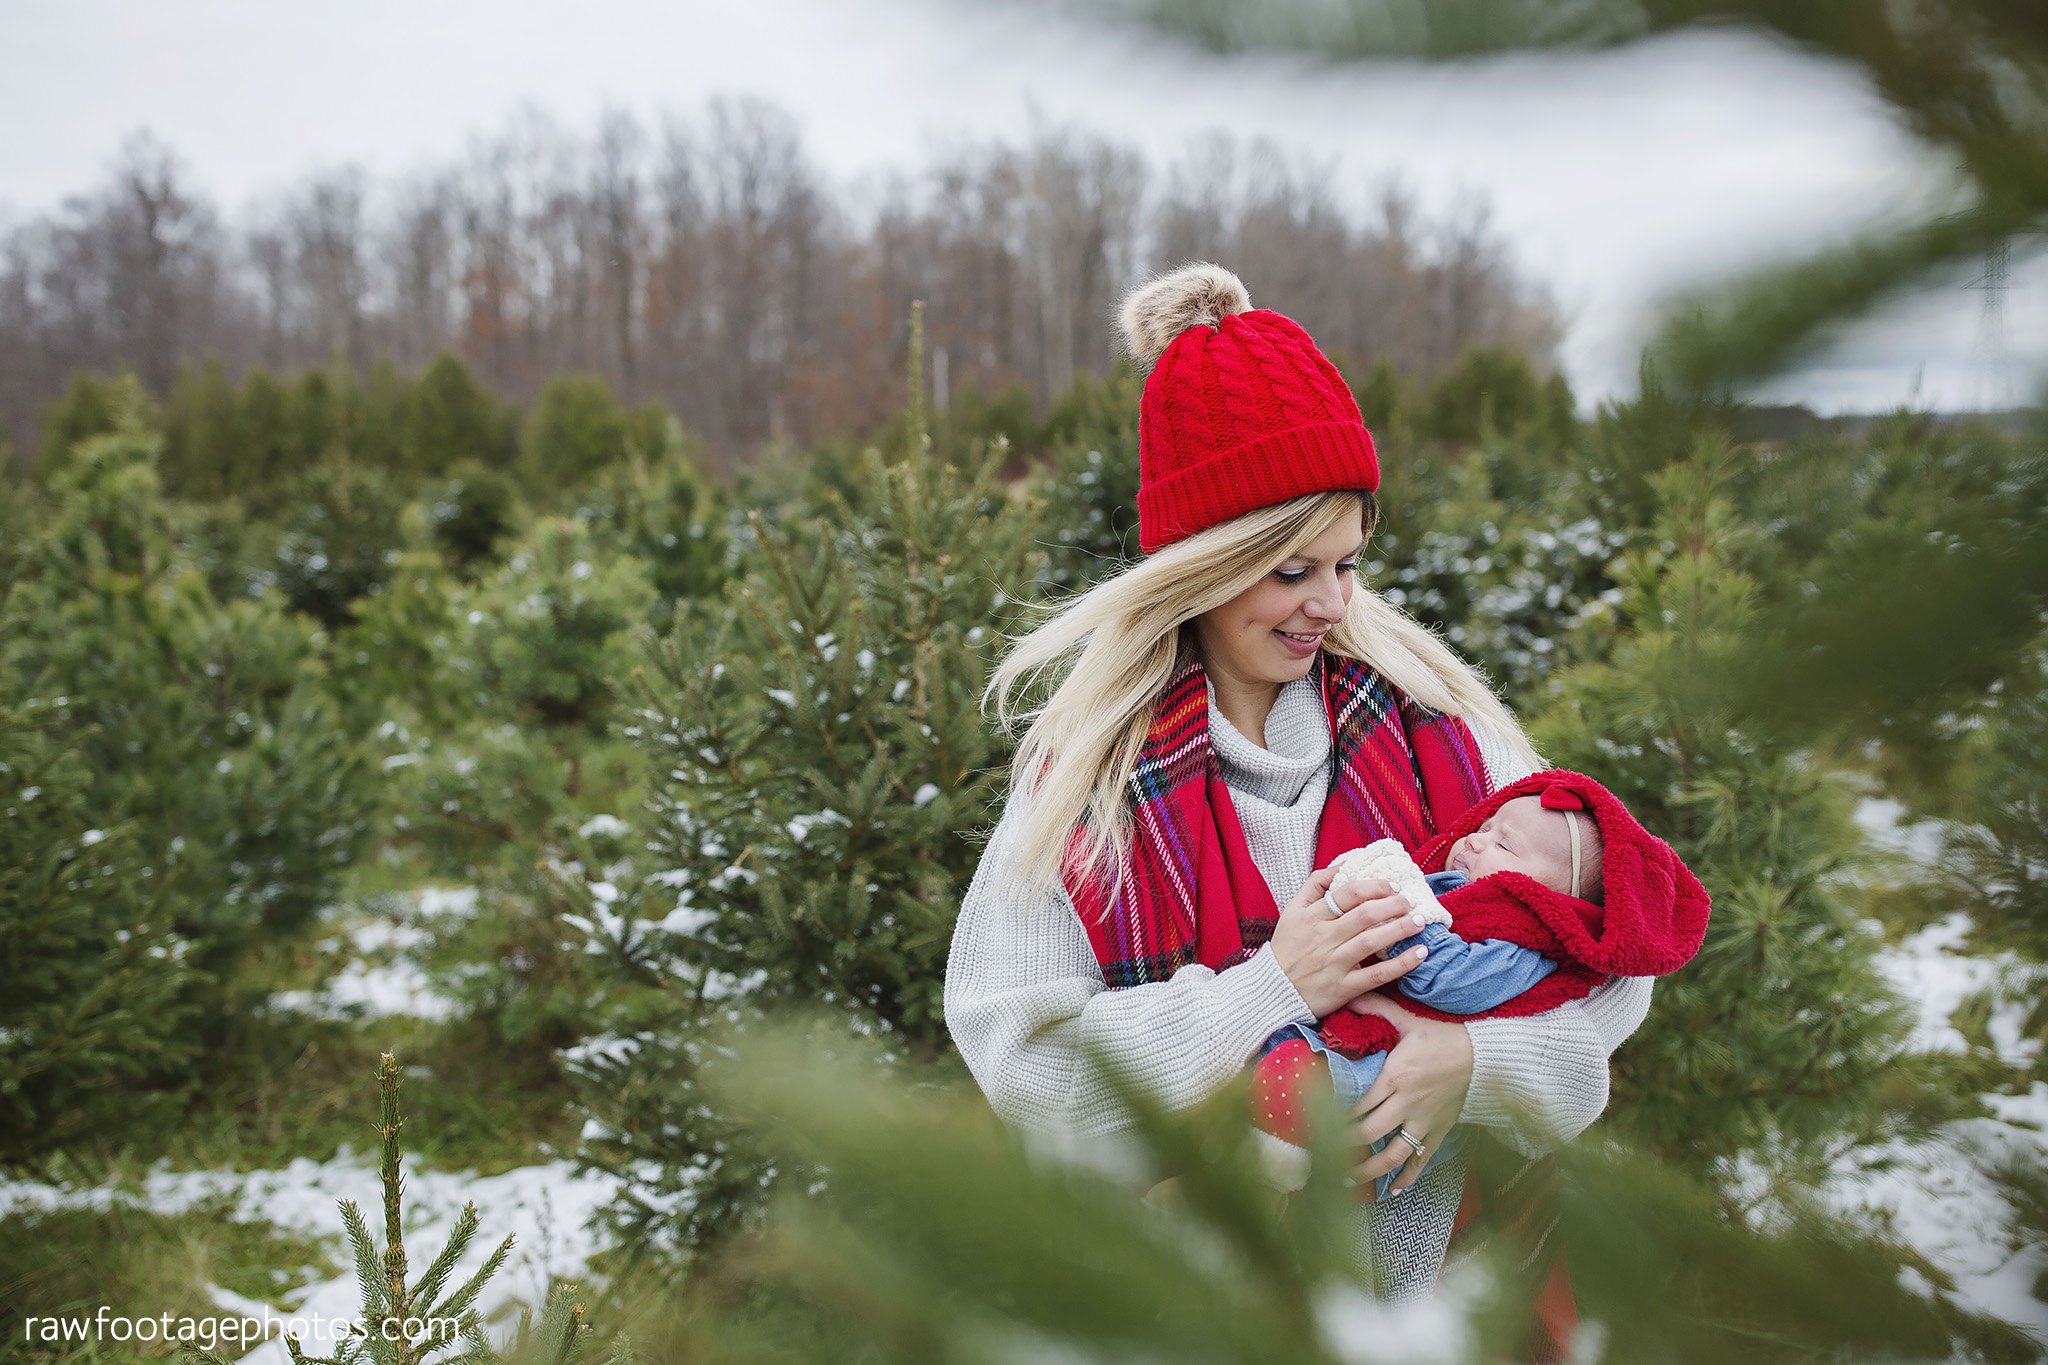 london_ontario_family_photographer-raw_footage_photography-tree_farm_minis-christmas_sessions-winter0011.jpg